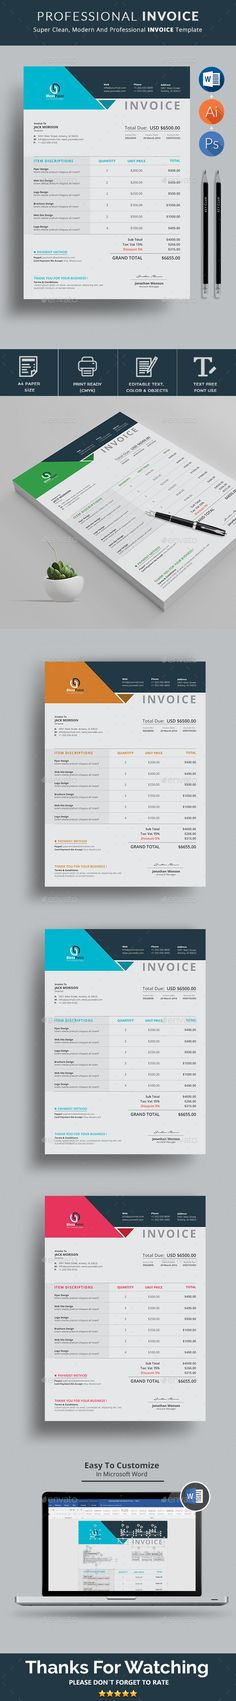 Invoice - Free Template Filing, Gaming and Template - use of an invoice